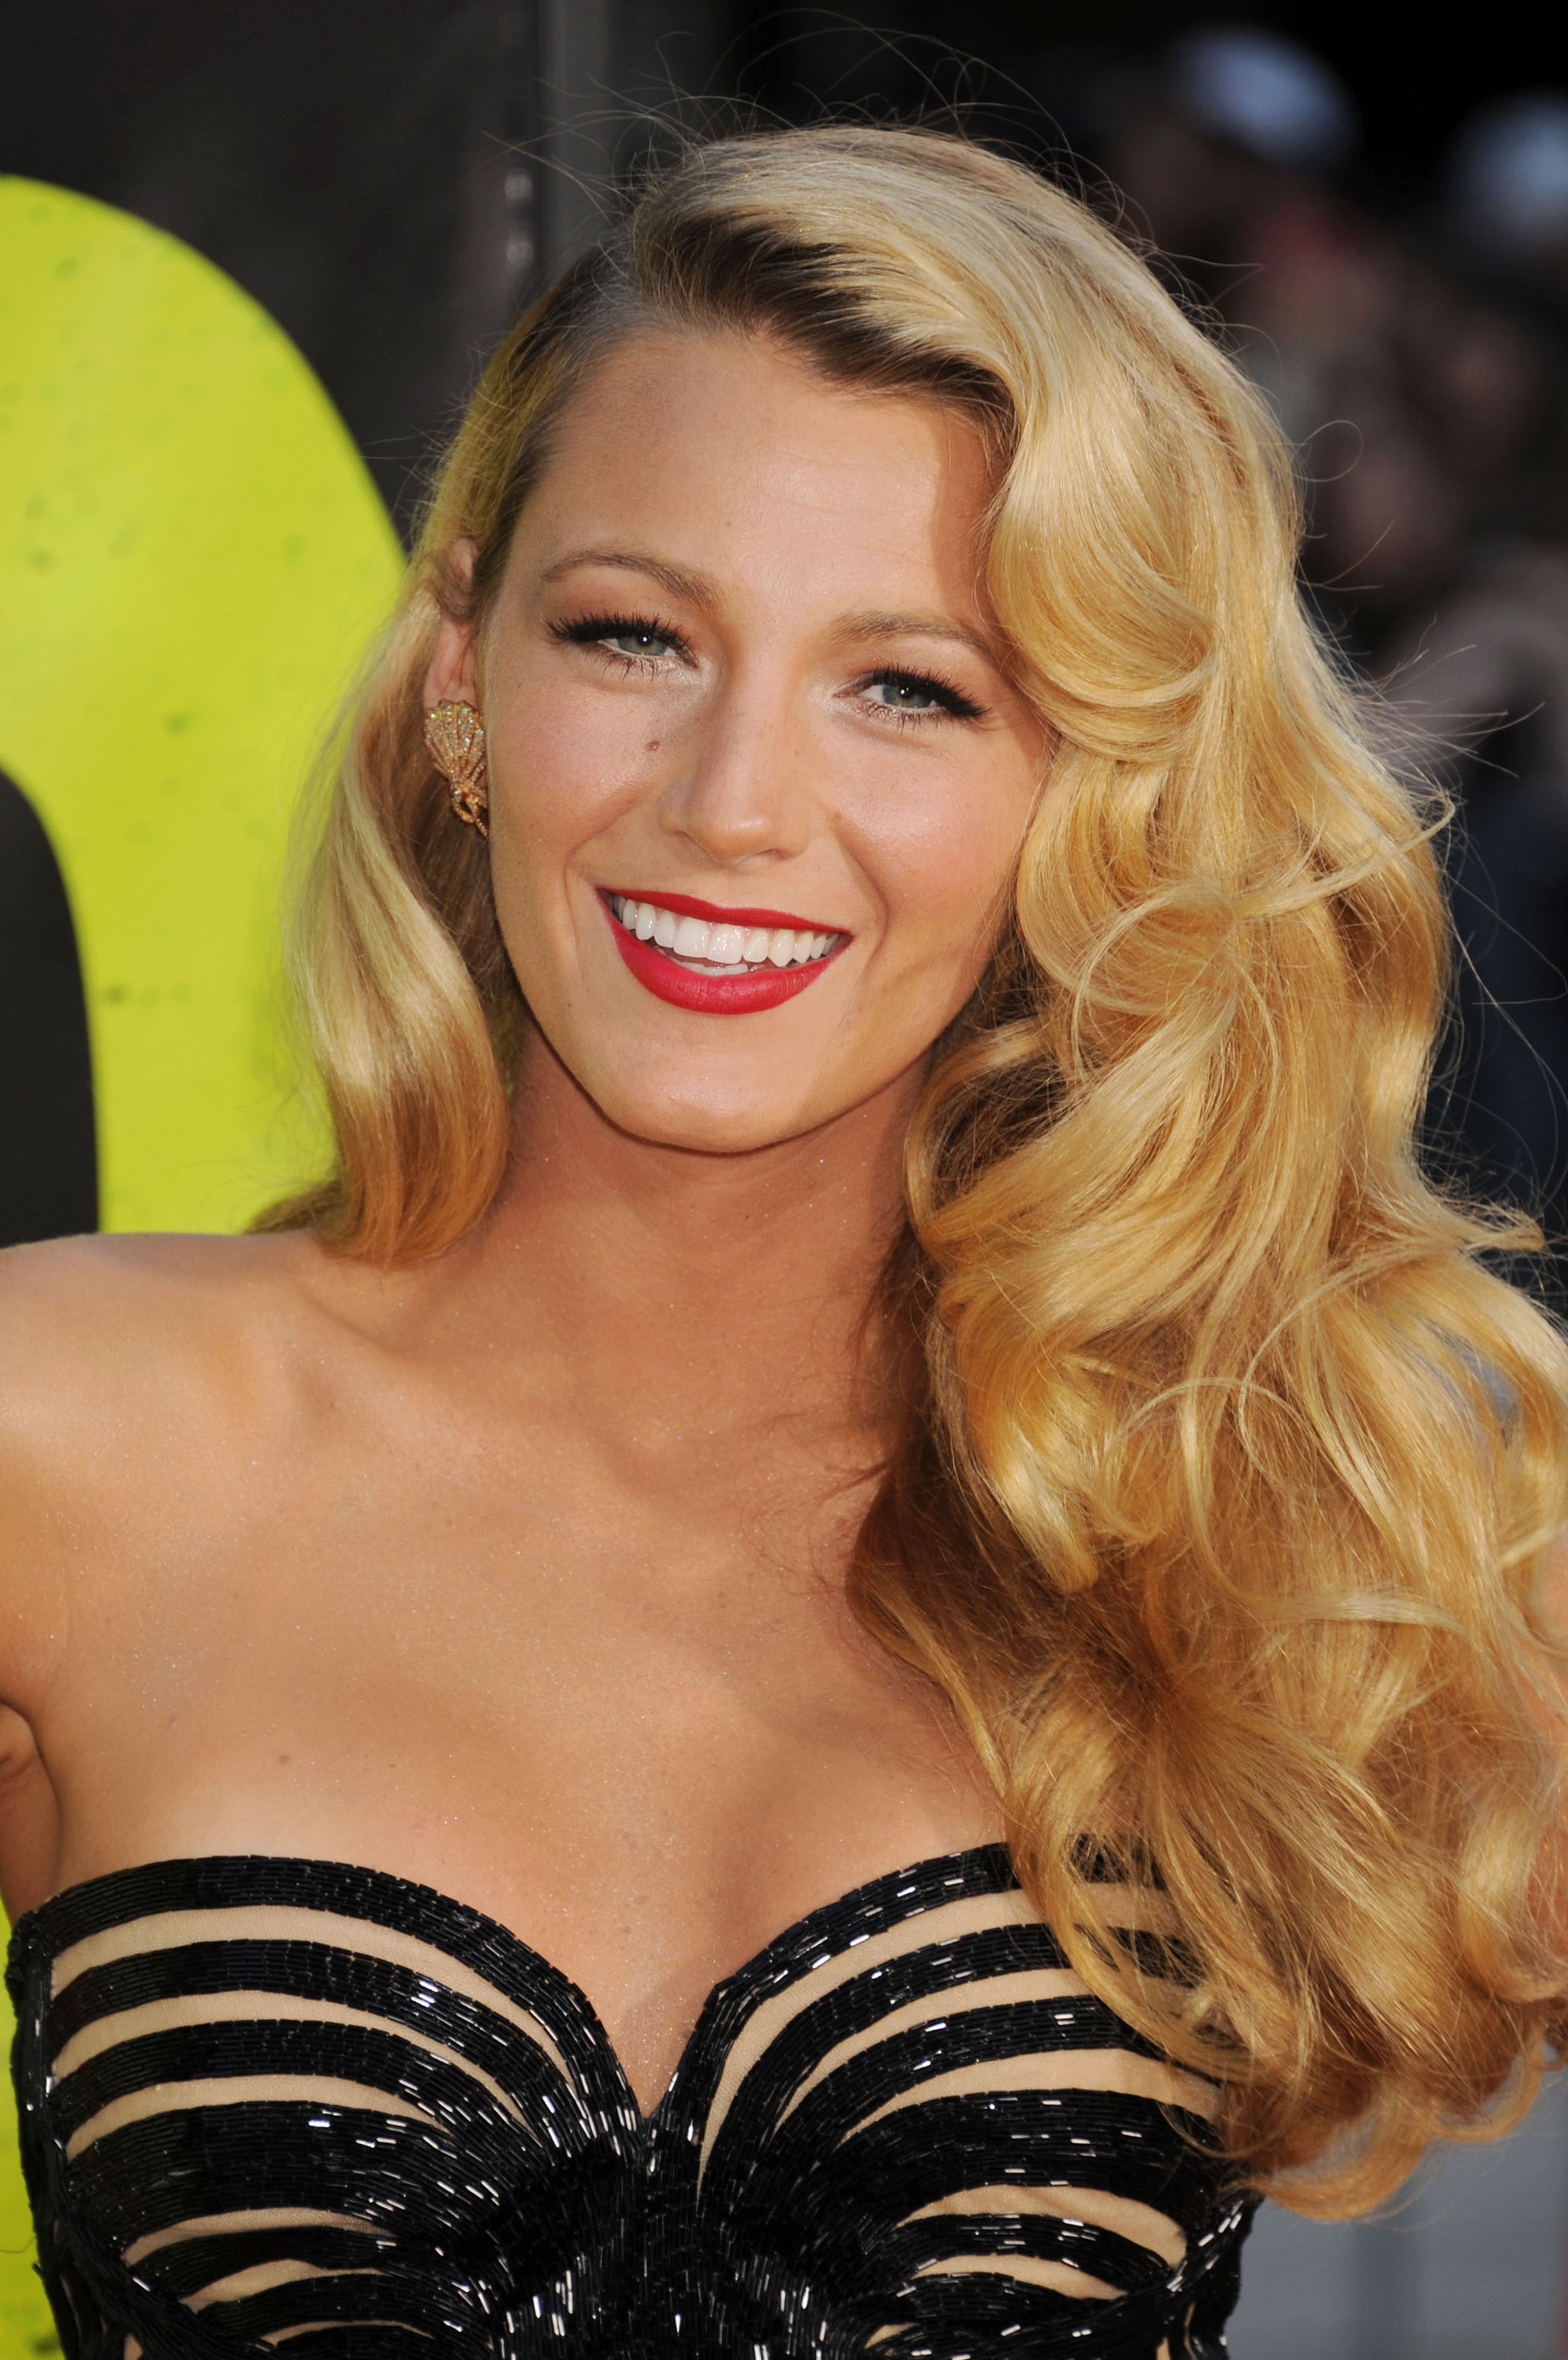 Blake Lively S Hair Stylist Only Uses This One Tool